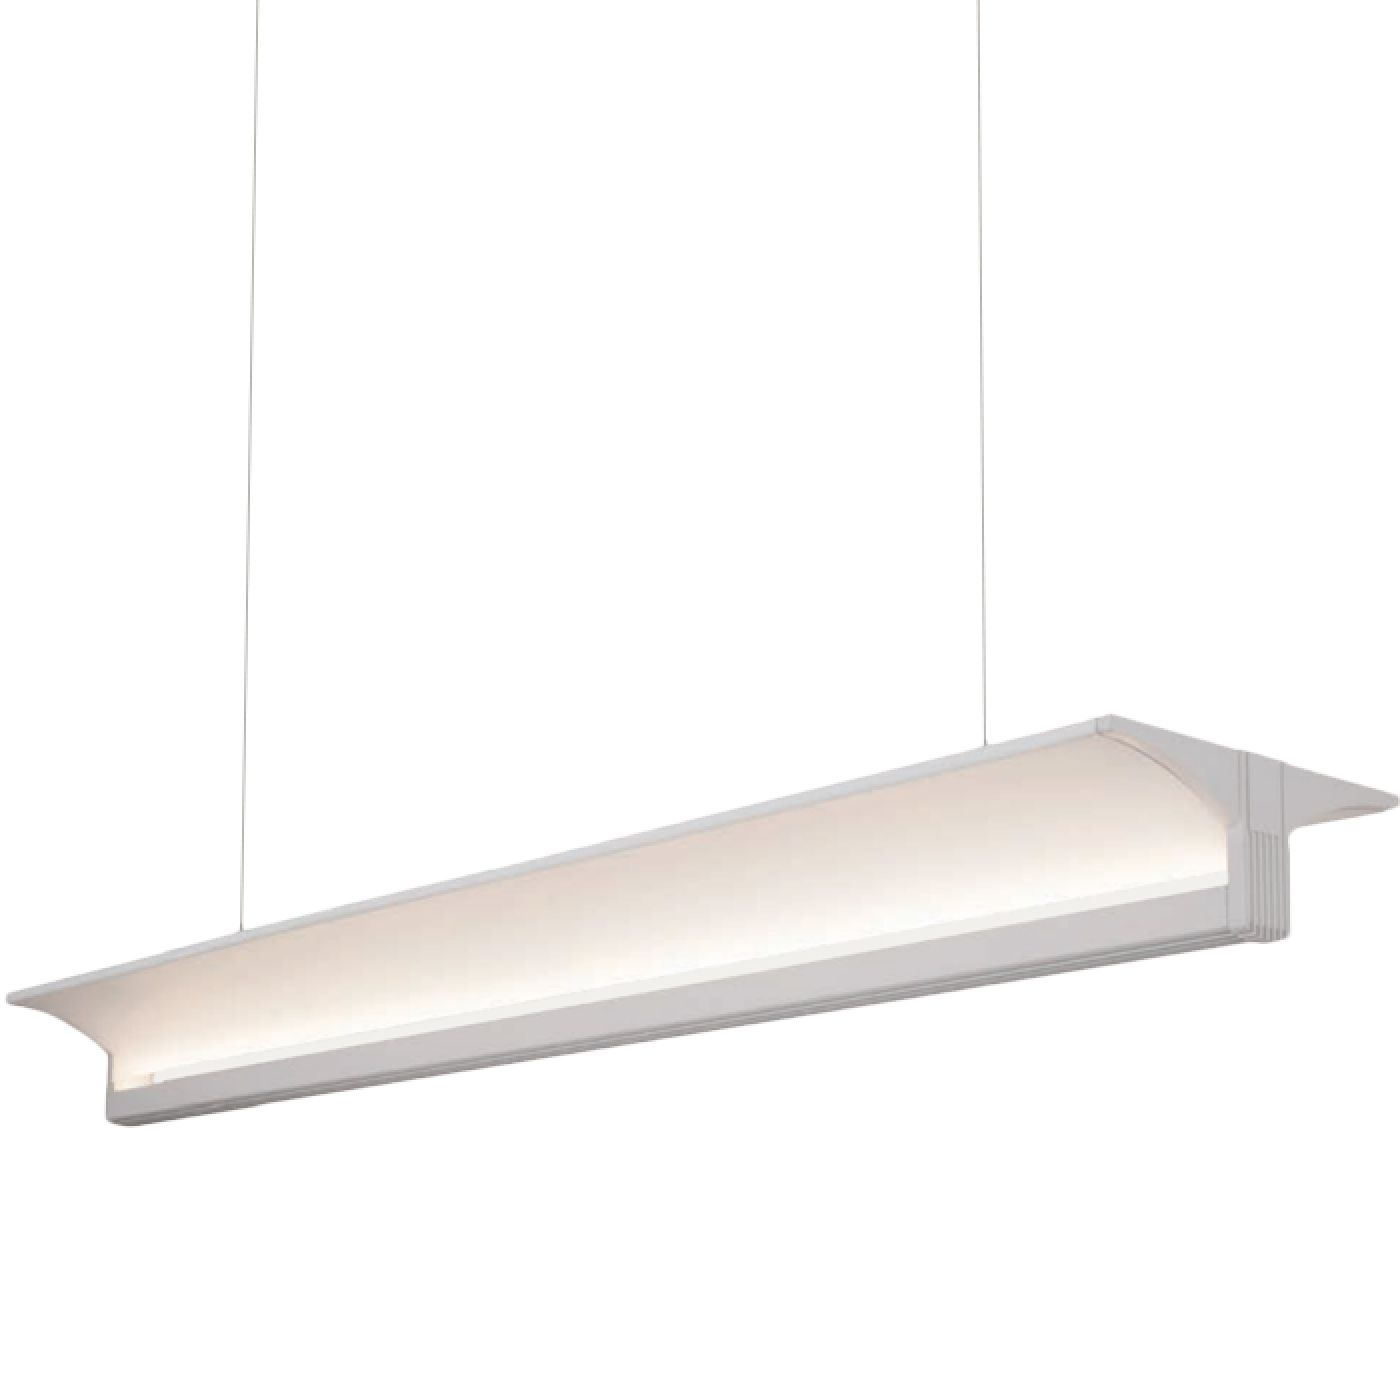 suspended lighting. Alcon Lighting 12126 Tee Beam Architectural LED Linear Suspended Pendant Mount Indirect Up Light Fixture E